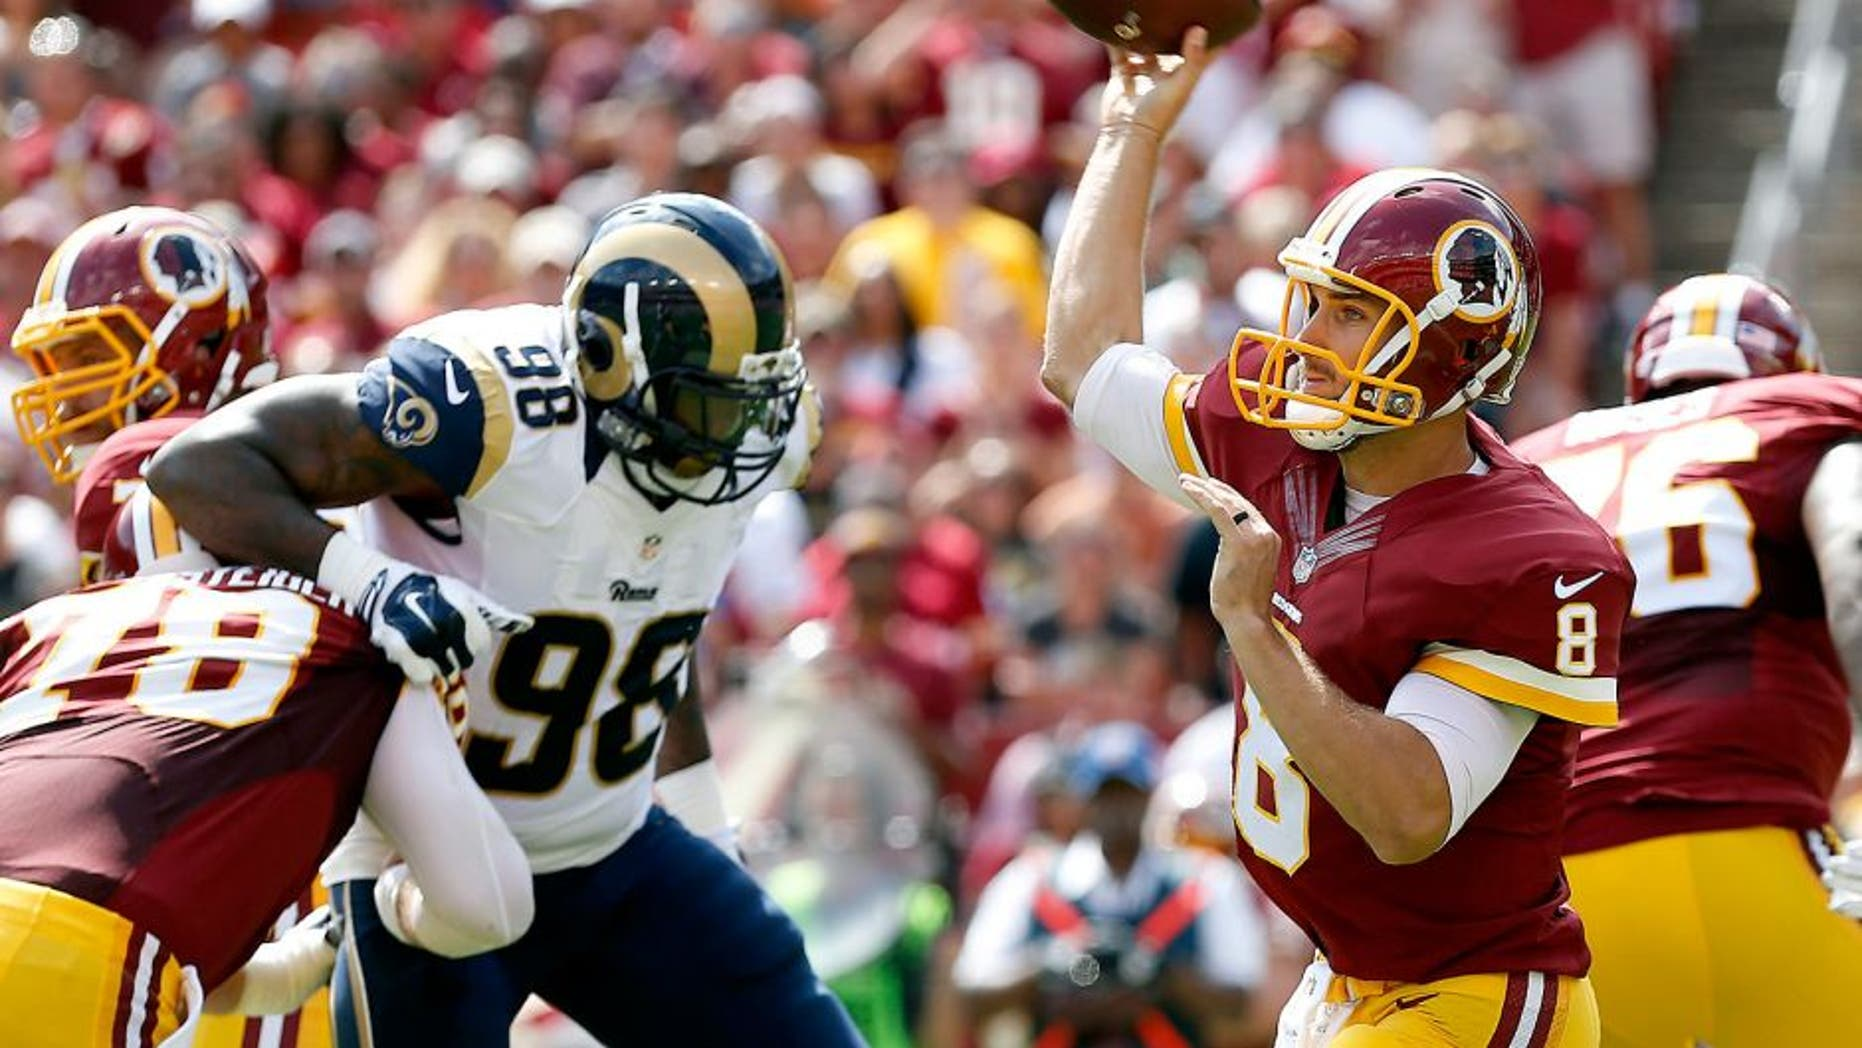 Sep 20, 2015; Landover, MD, USA; Washington Redskins quarterback Kirk Cousins (8) throws the ball as St. Louis Rams defensive tackle Nick Fairley (98) chases in the first quarter at FedEx Field. Mandatory Credit: Geoff Burke-USA TODAY Sports